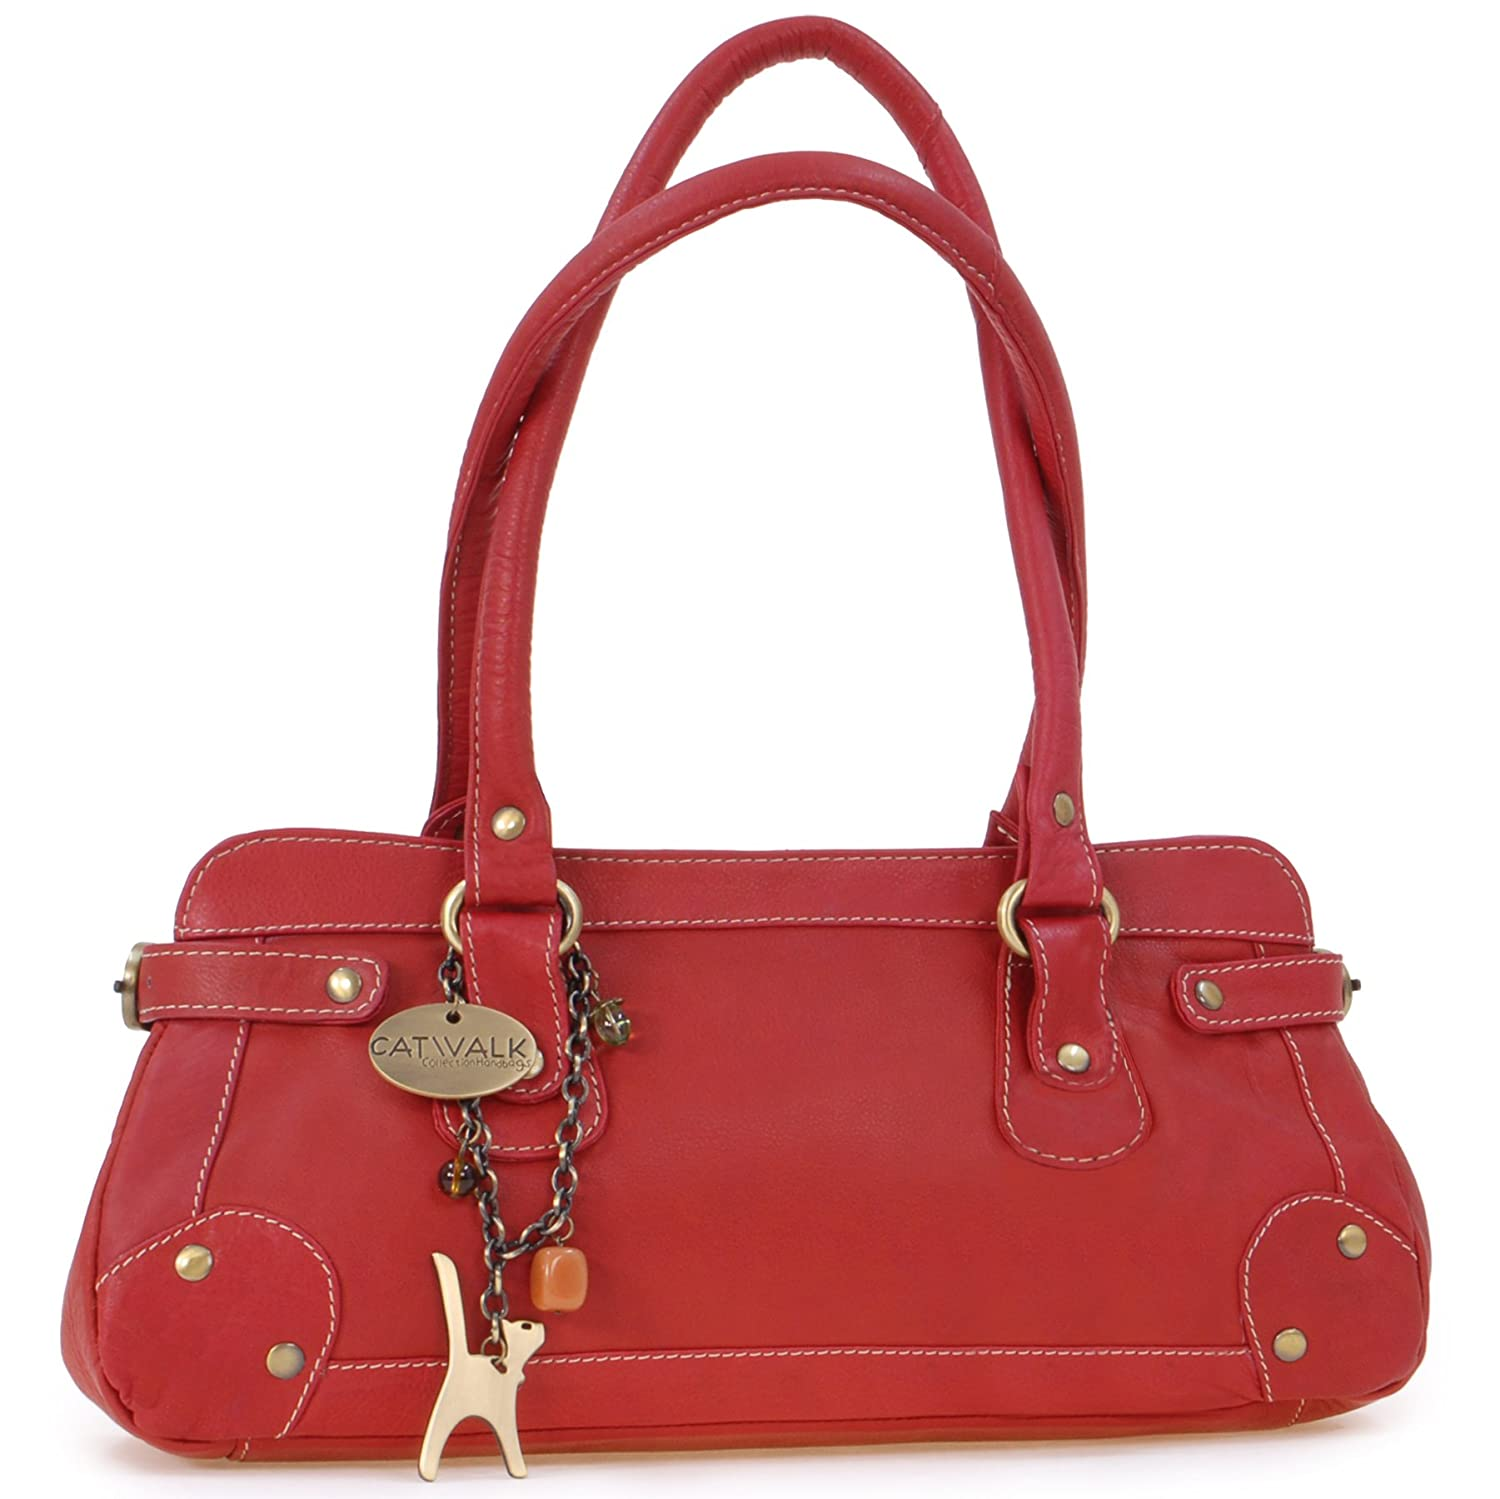 Catwalk Collection Leather Handbag - Carnaby St. Catwalk Collection Handbags 5060274970688